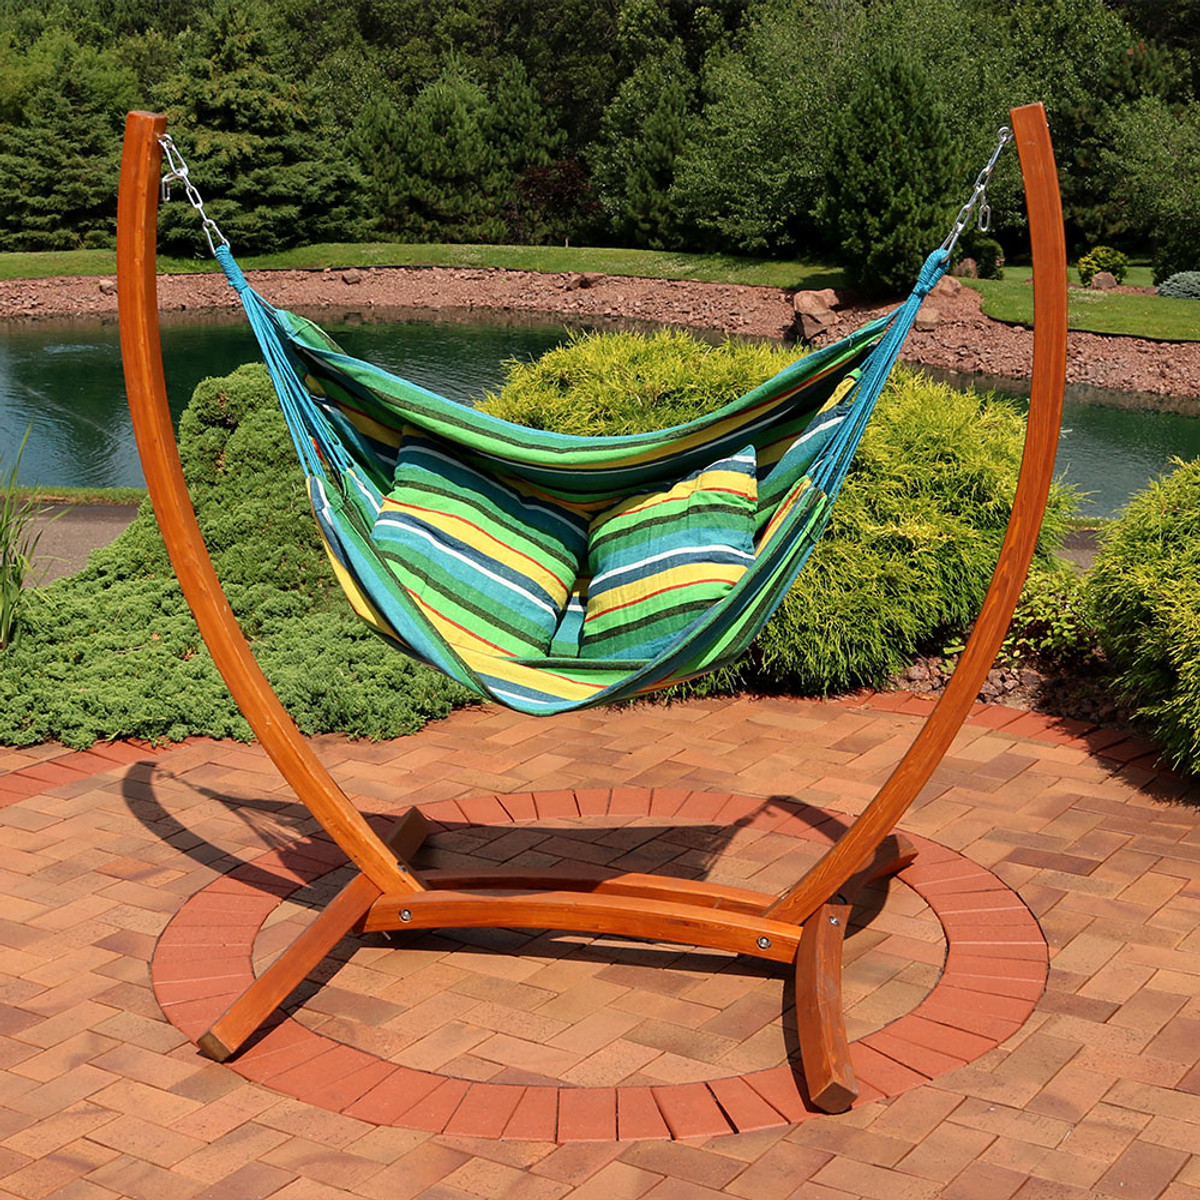 Sunnydaze Hanging Hammock Chair Swing With Sturdy Space